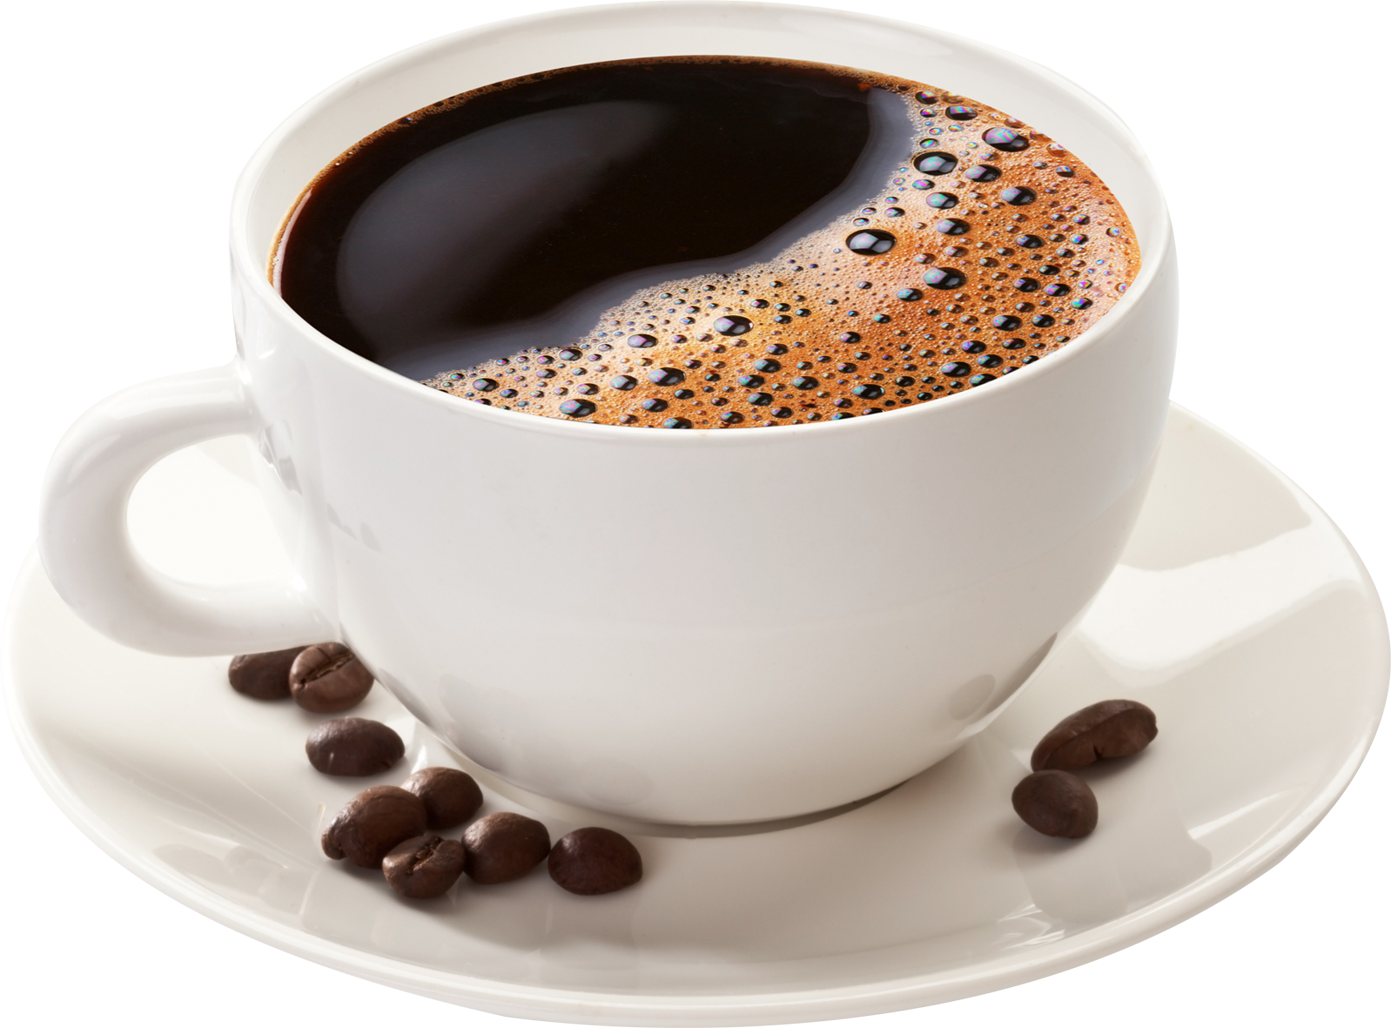 Image arts. Coffee png images